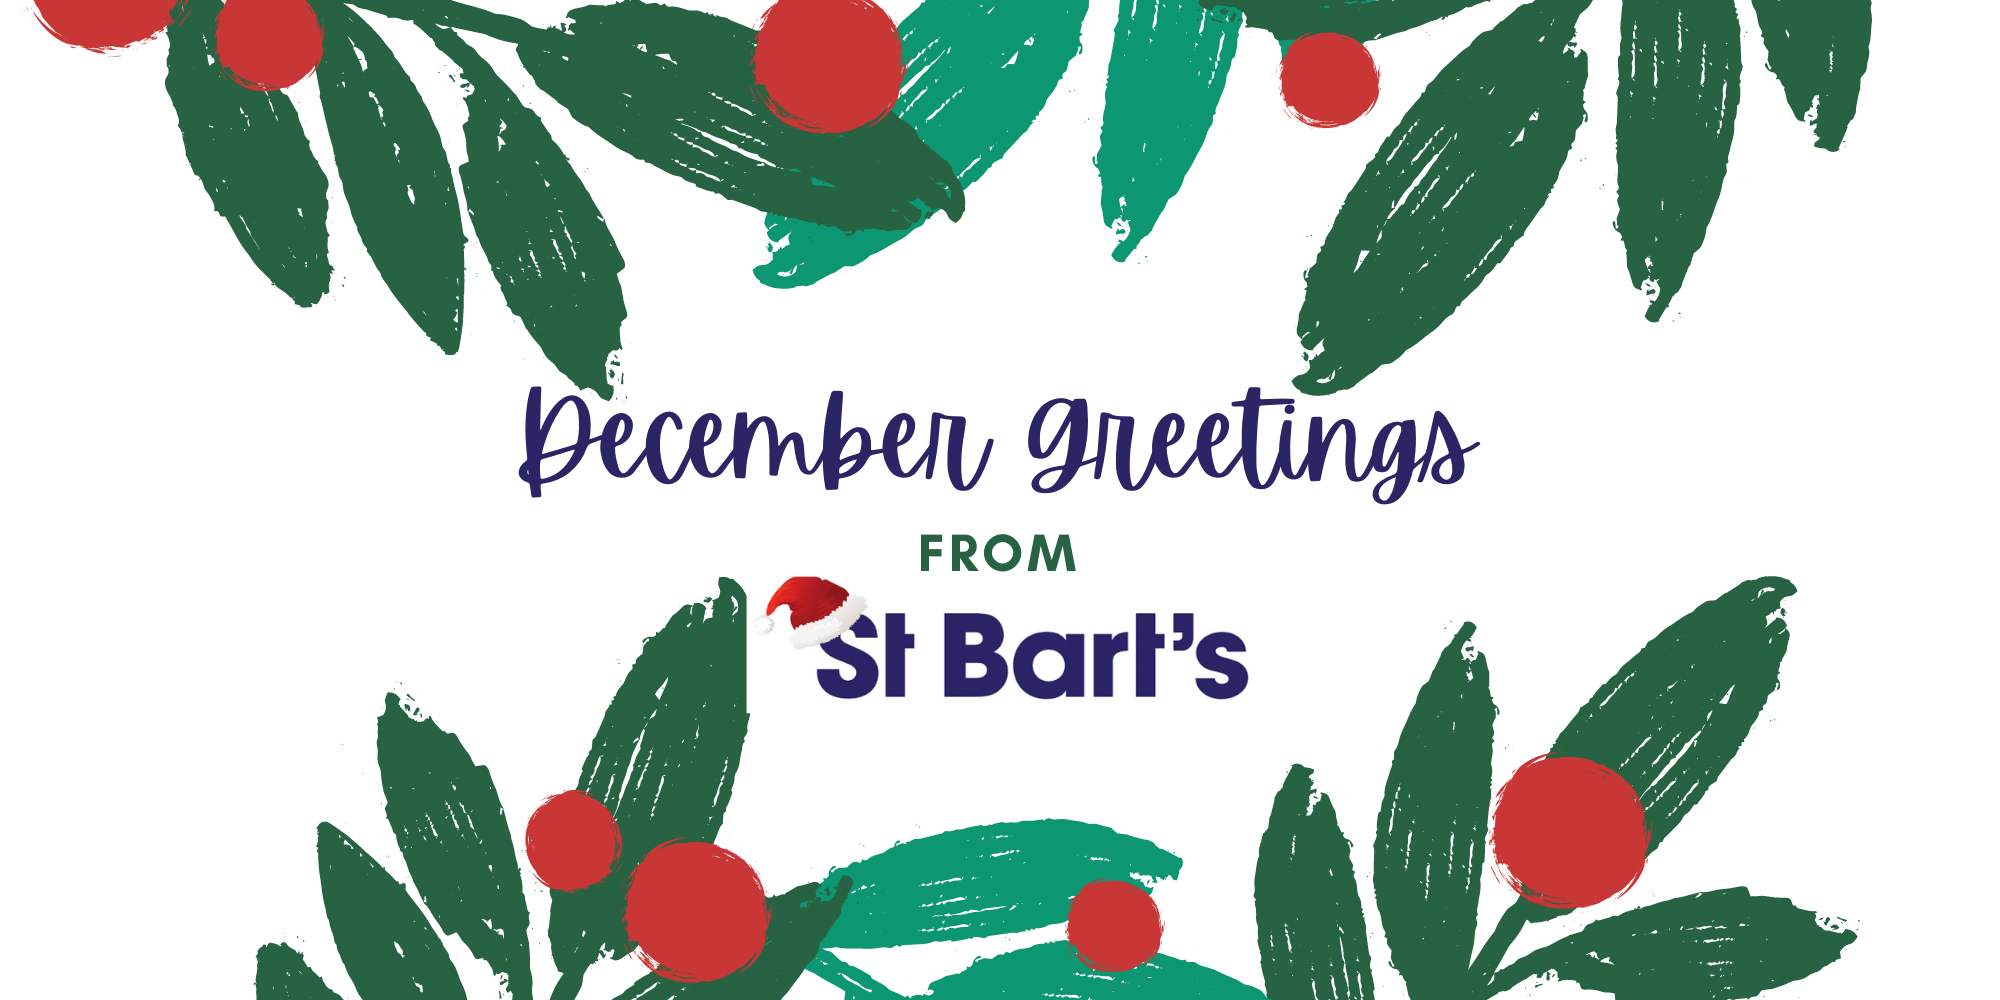 December Greetings from St Bart's